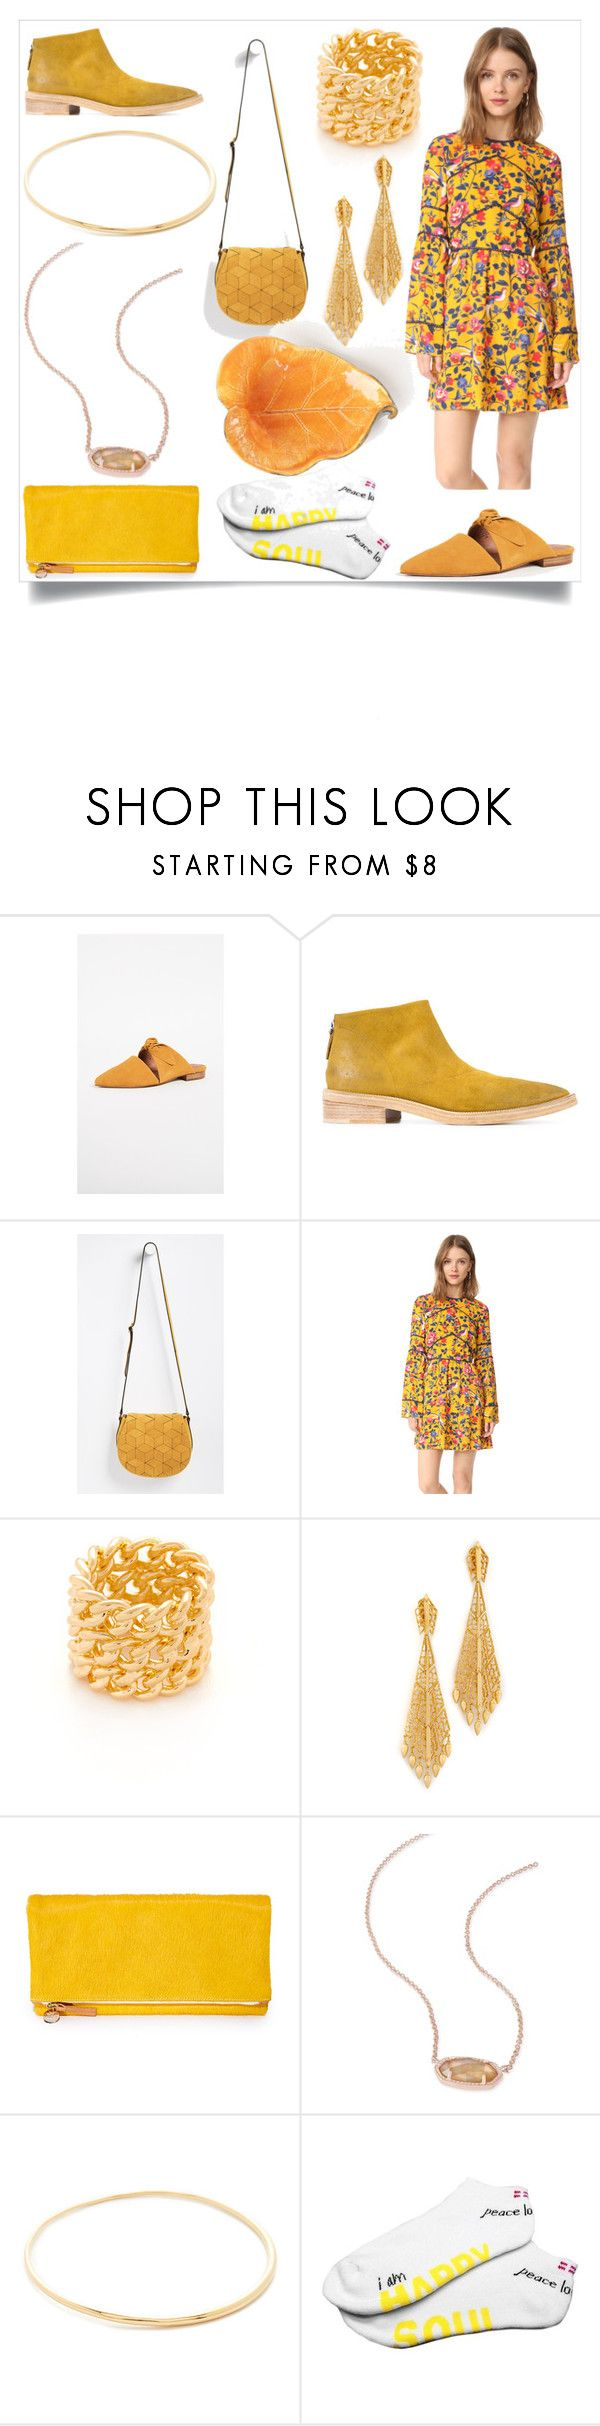 """""""Remember me"""" by emmamegan-5678 ❤ liked on Polyvore featuring Jeffrey Campbell, Marsèll, Welden, Tanya Taylor, Amber Sceats, Ben-Amun, Clare V., Kendra Scott, Gabriela Artigas and Peace Love World"""